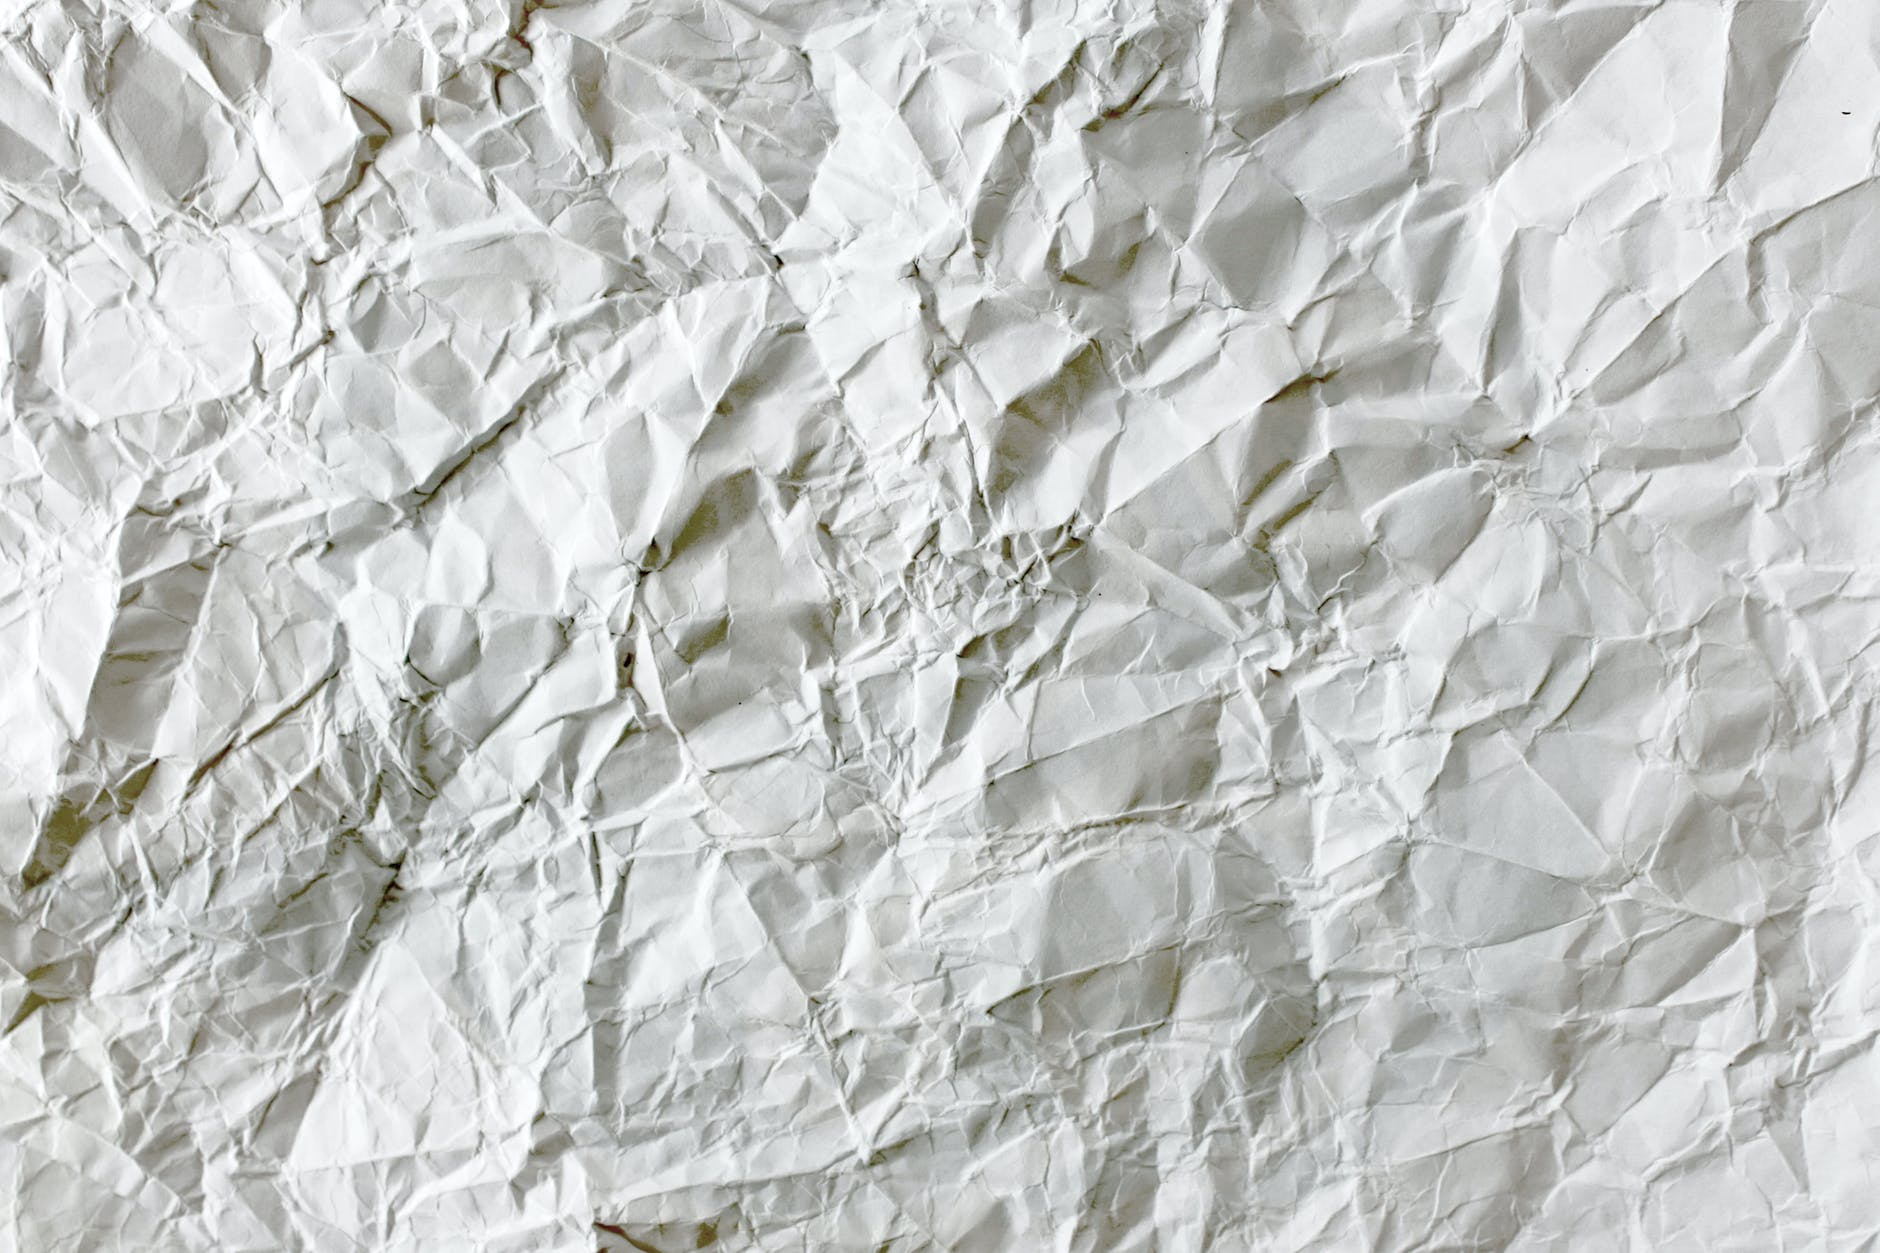 Paper waste in offices